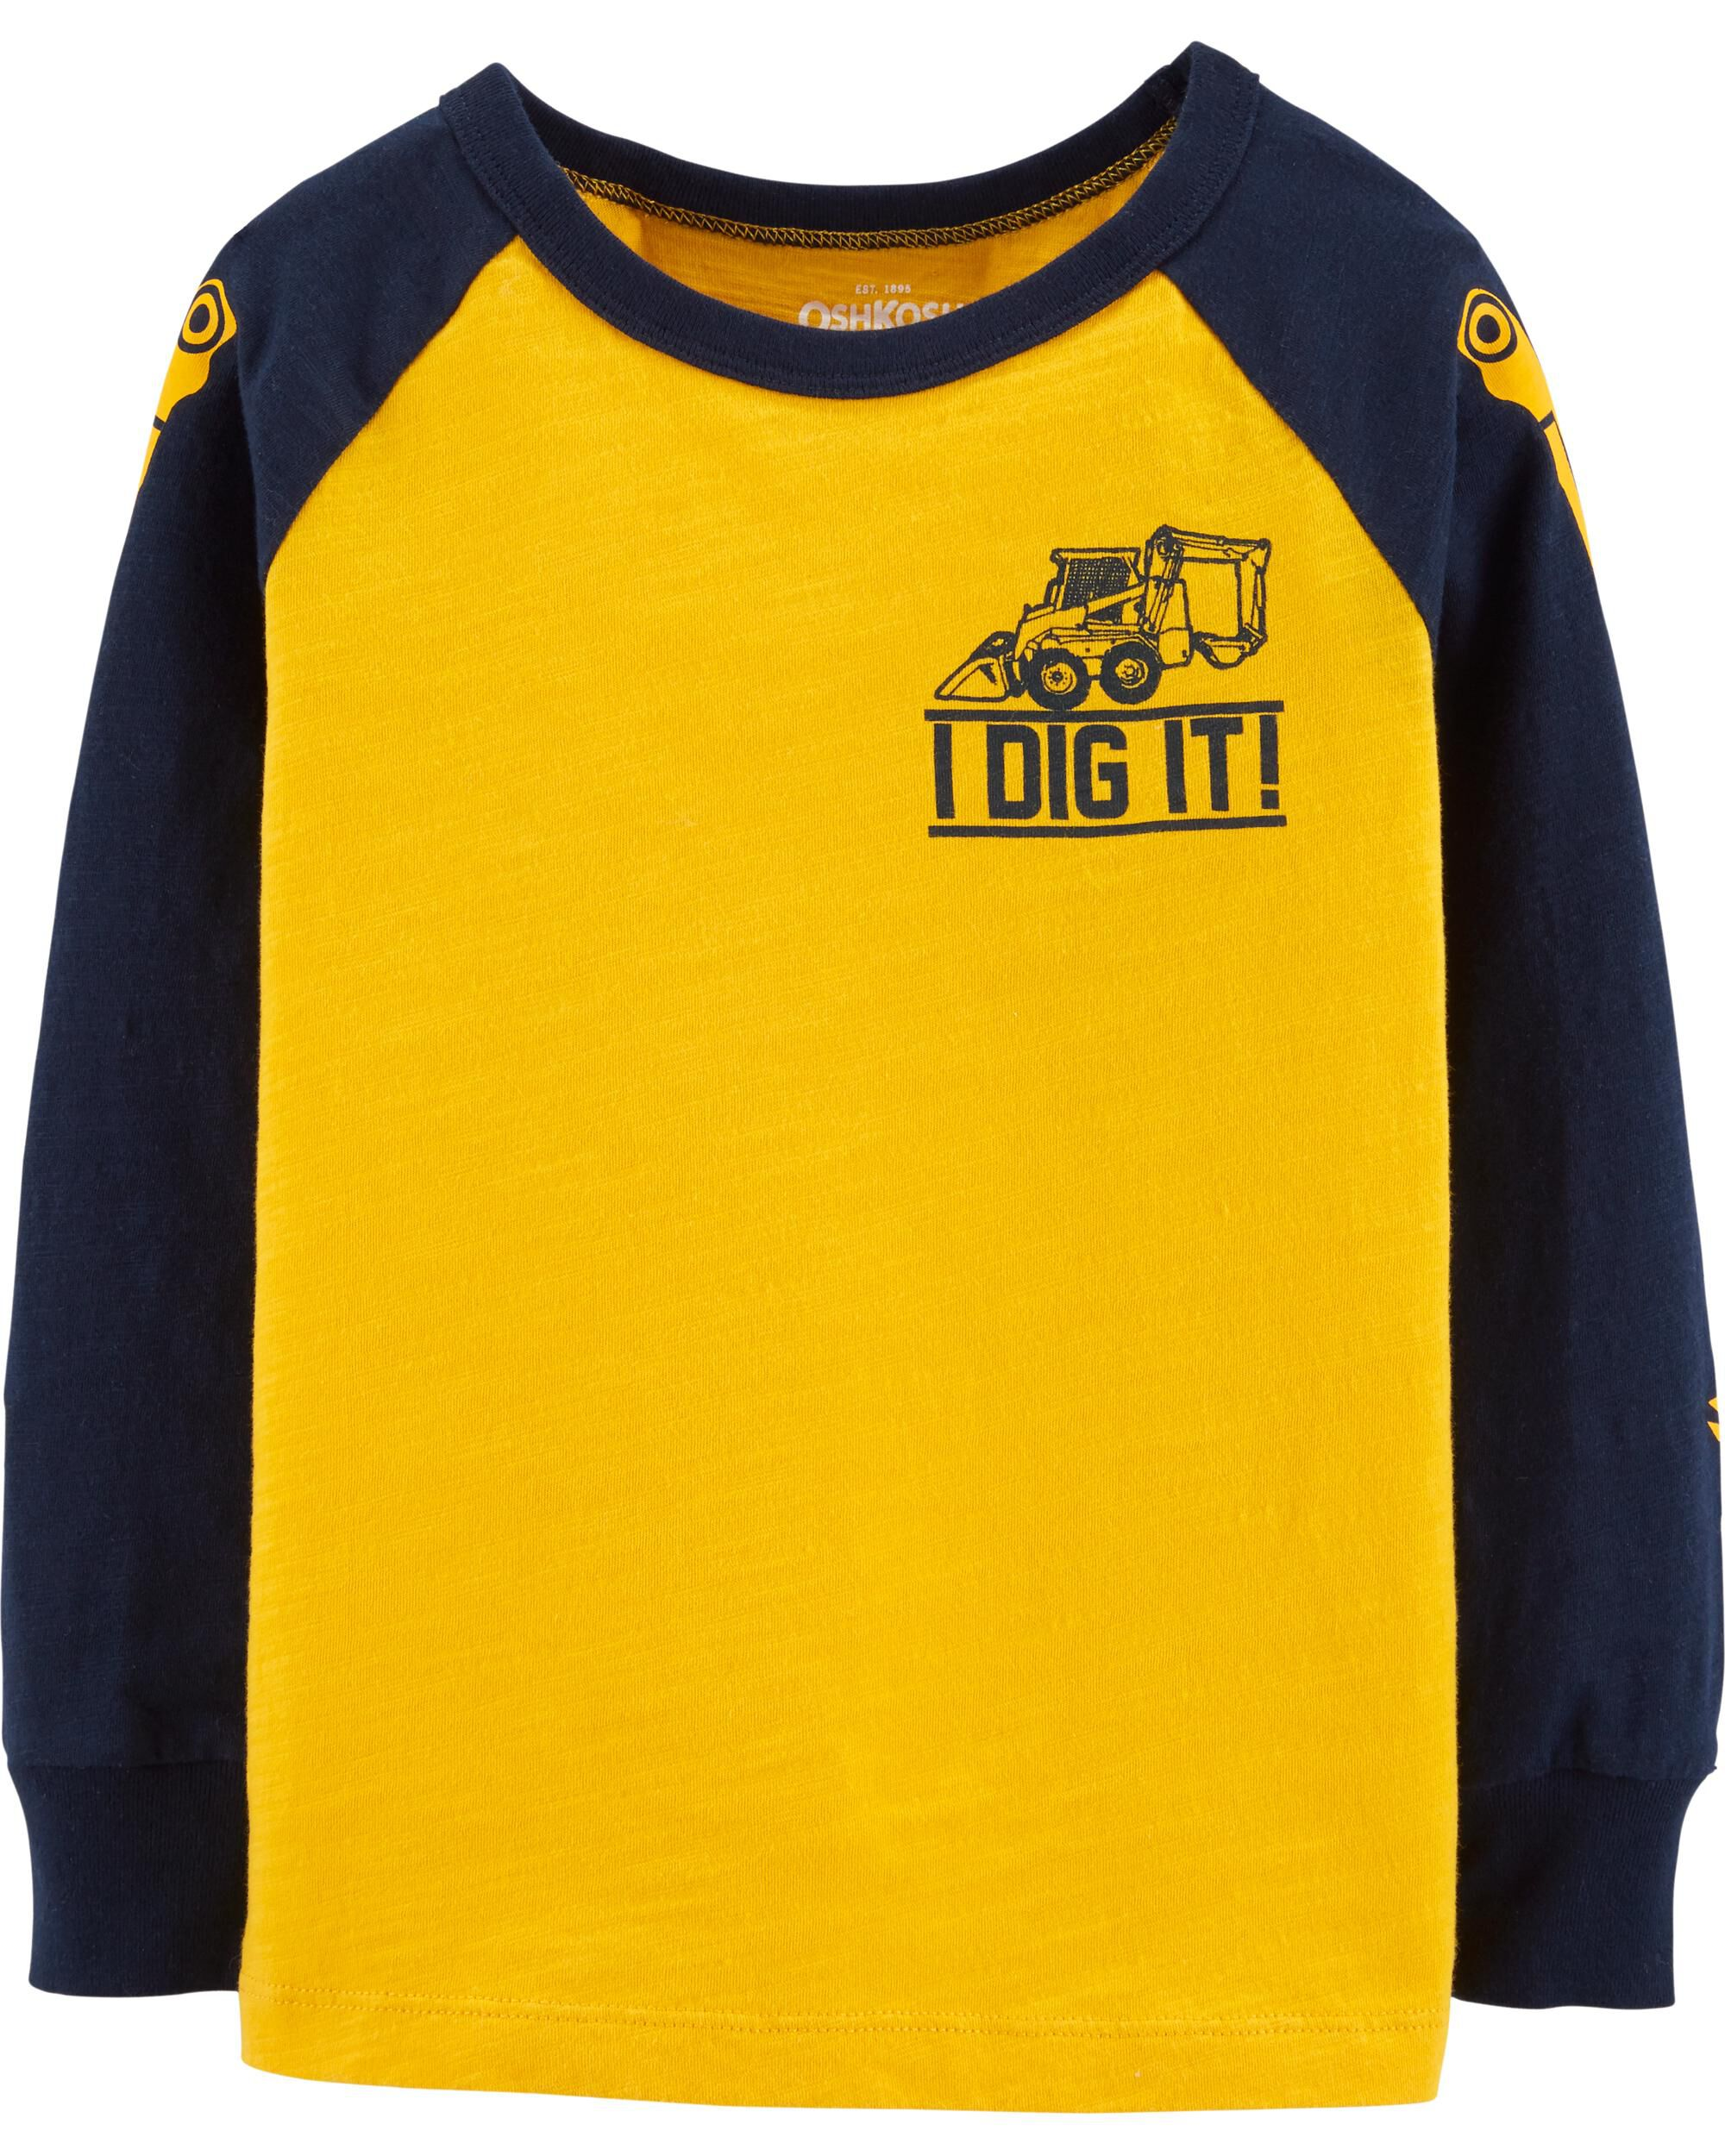 Im 2 Can You Dig It Two Year Old Infant//Toddler Cotton Jersey T-Shirt